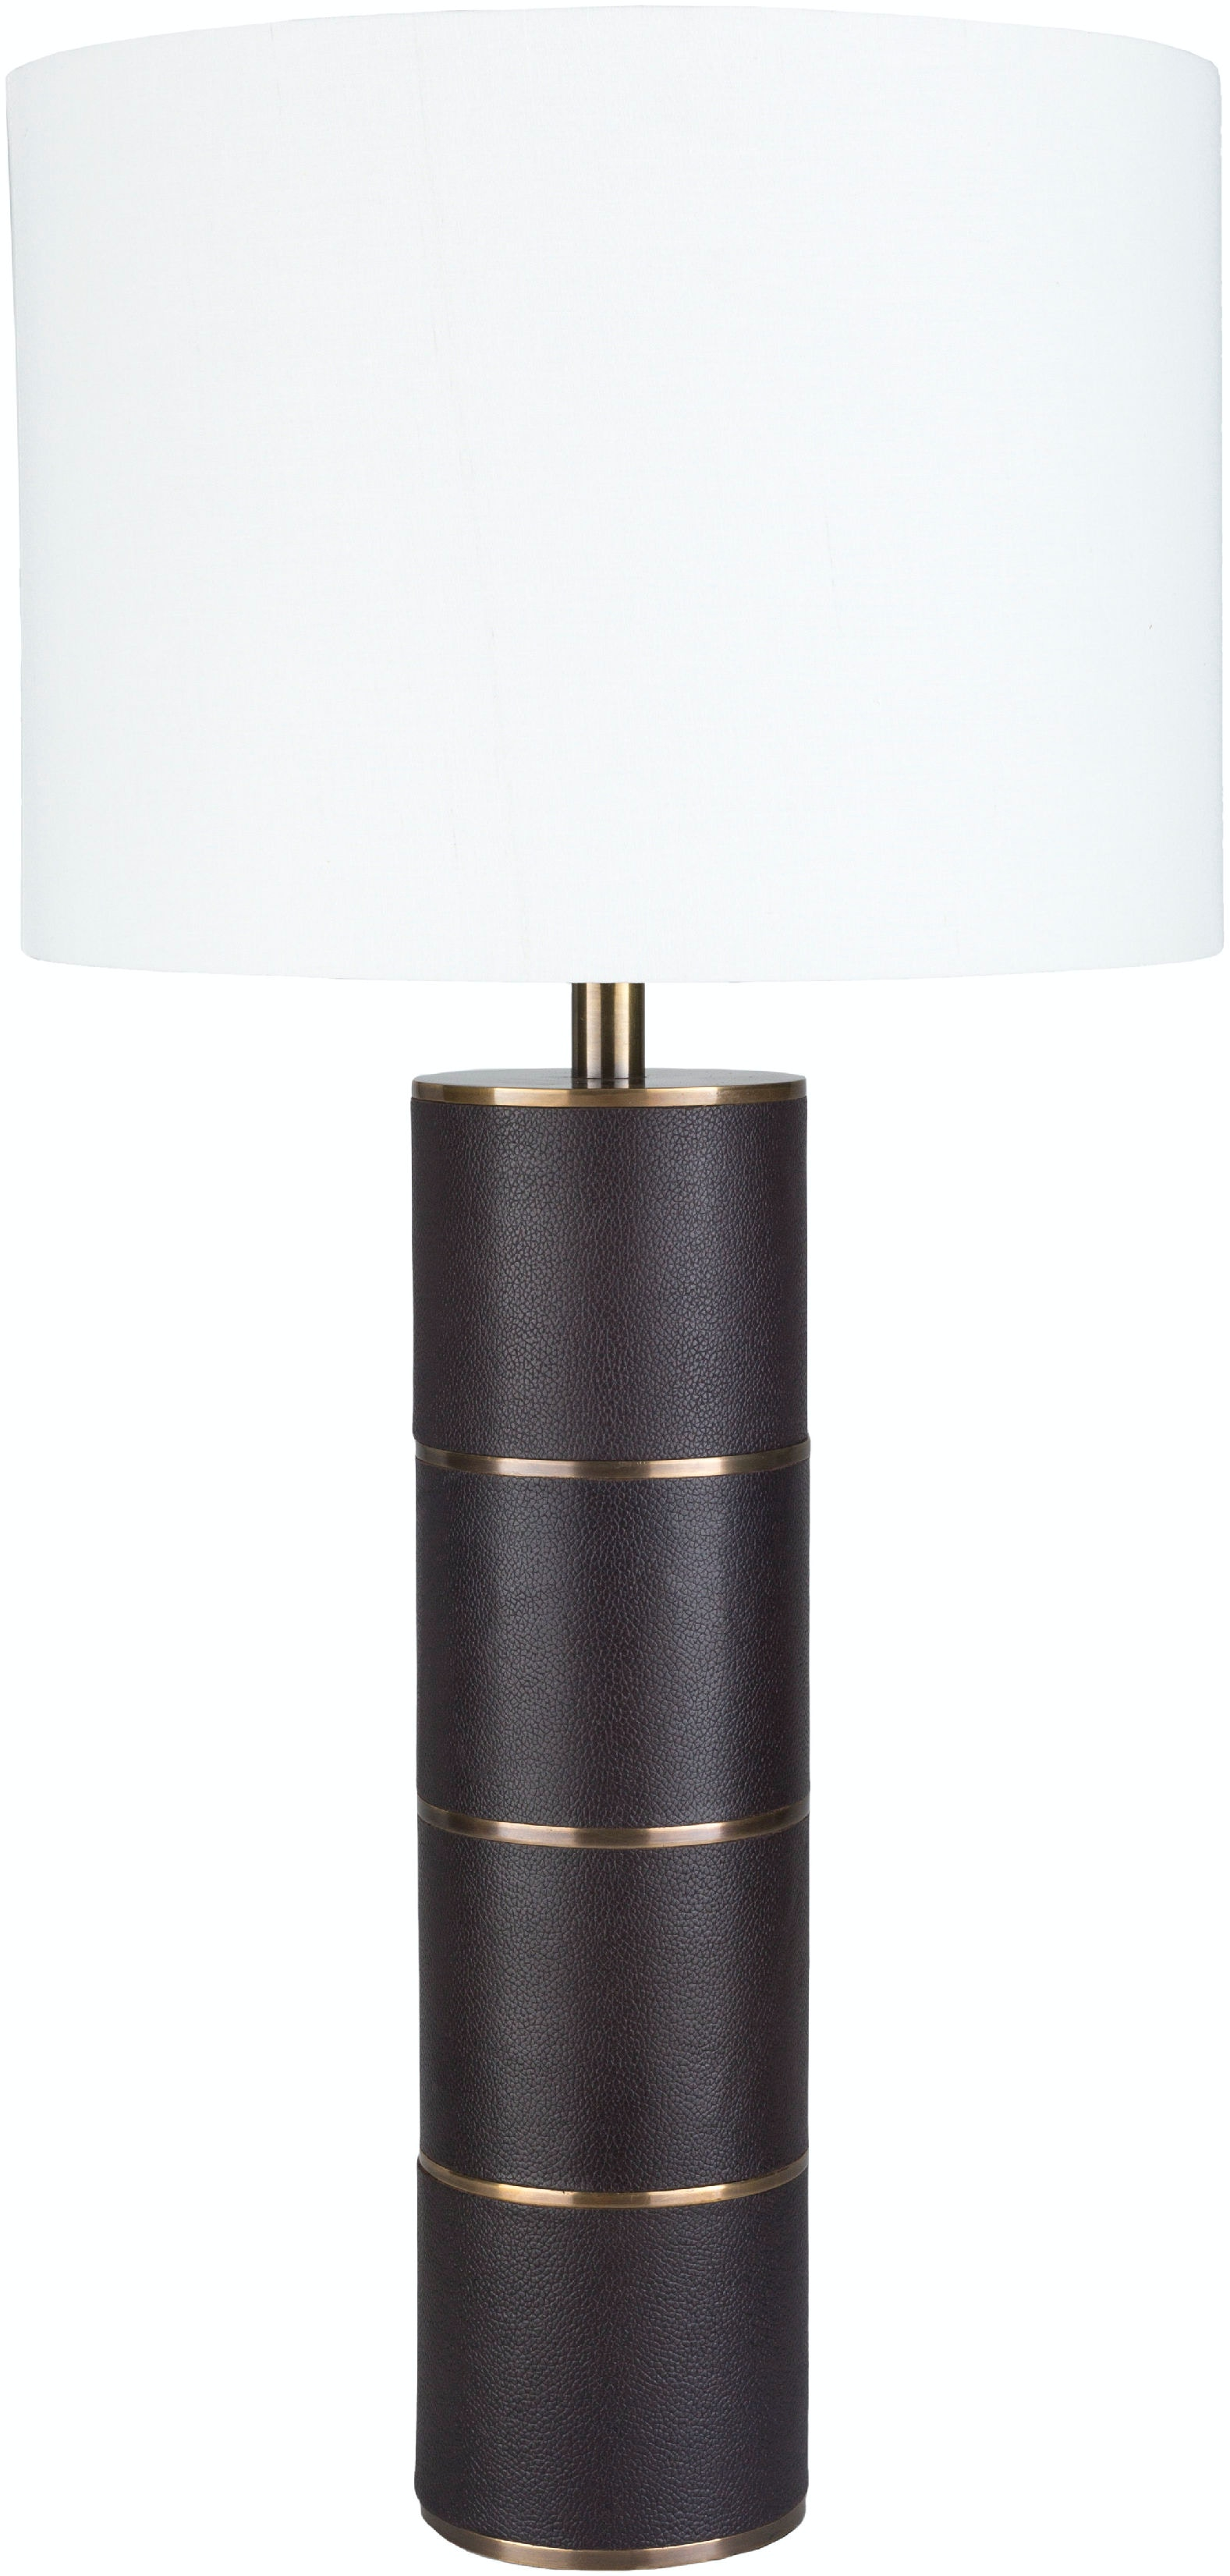 Surya Andrews 14 X 14 X 28.5 Portable Lamp ADS 001